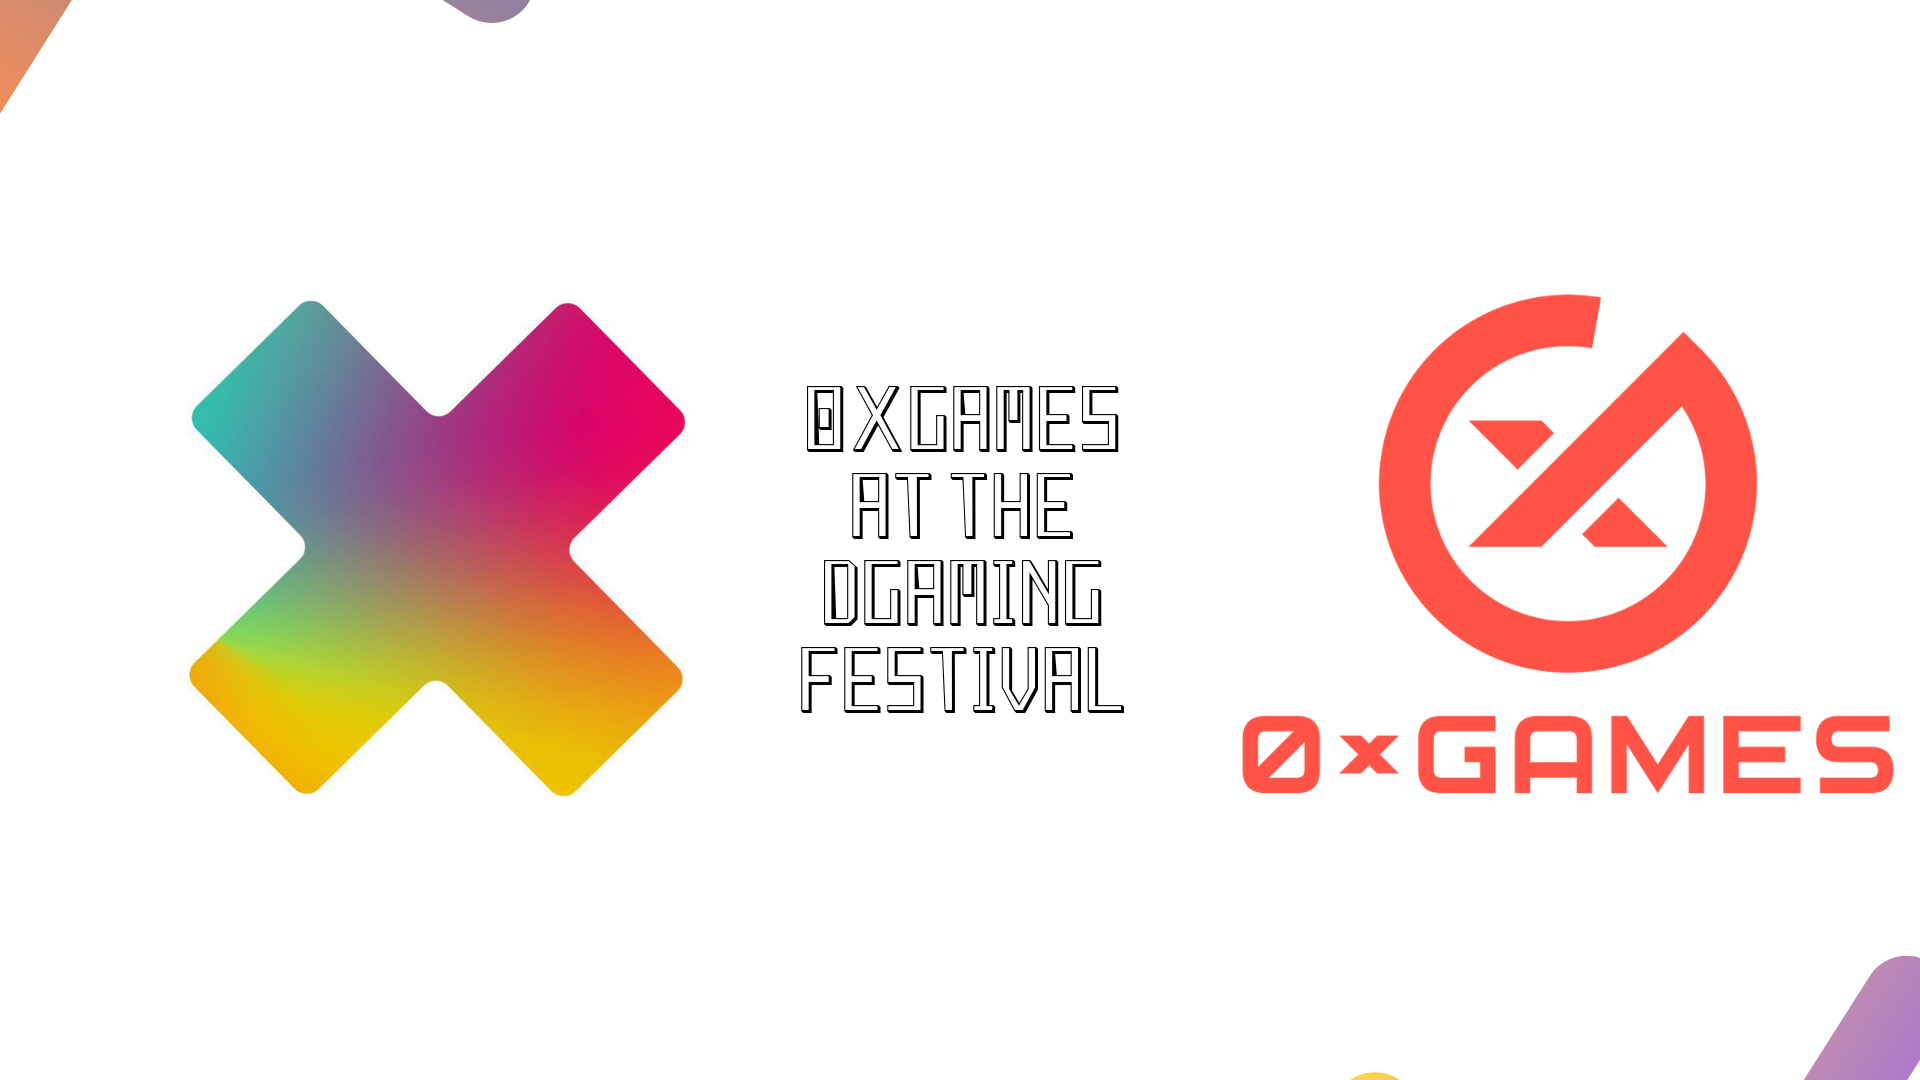 0xgames AT THE DGAMING FESTIVAL